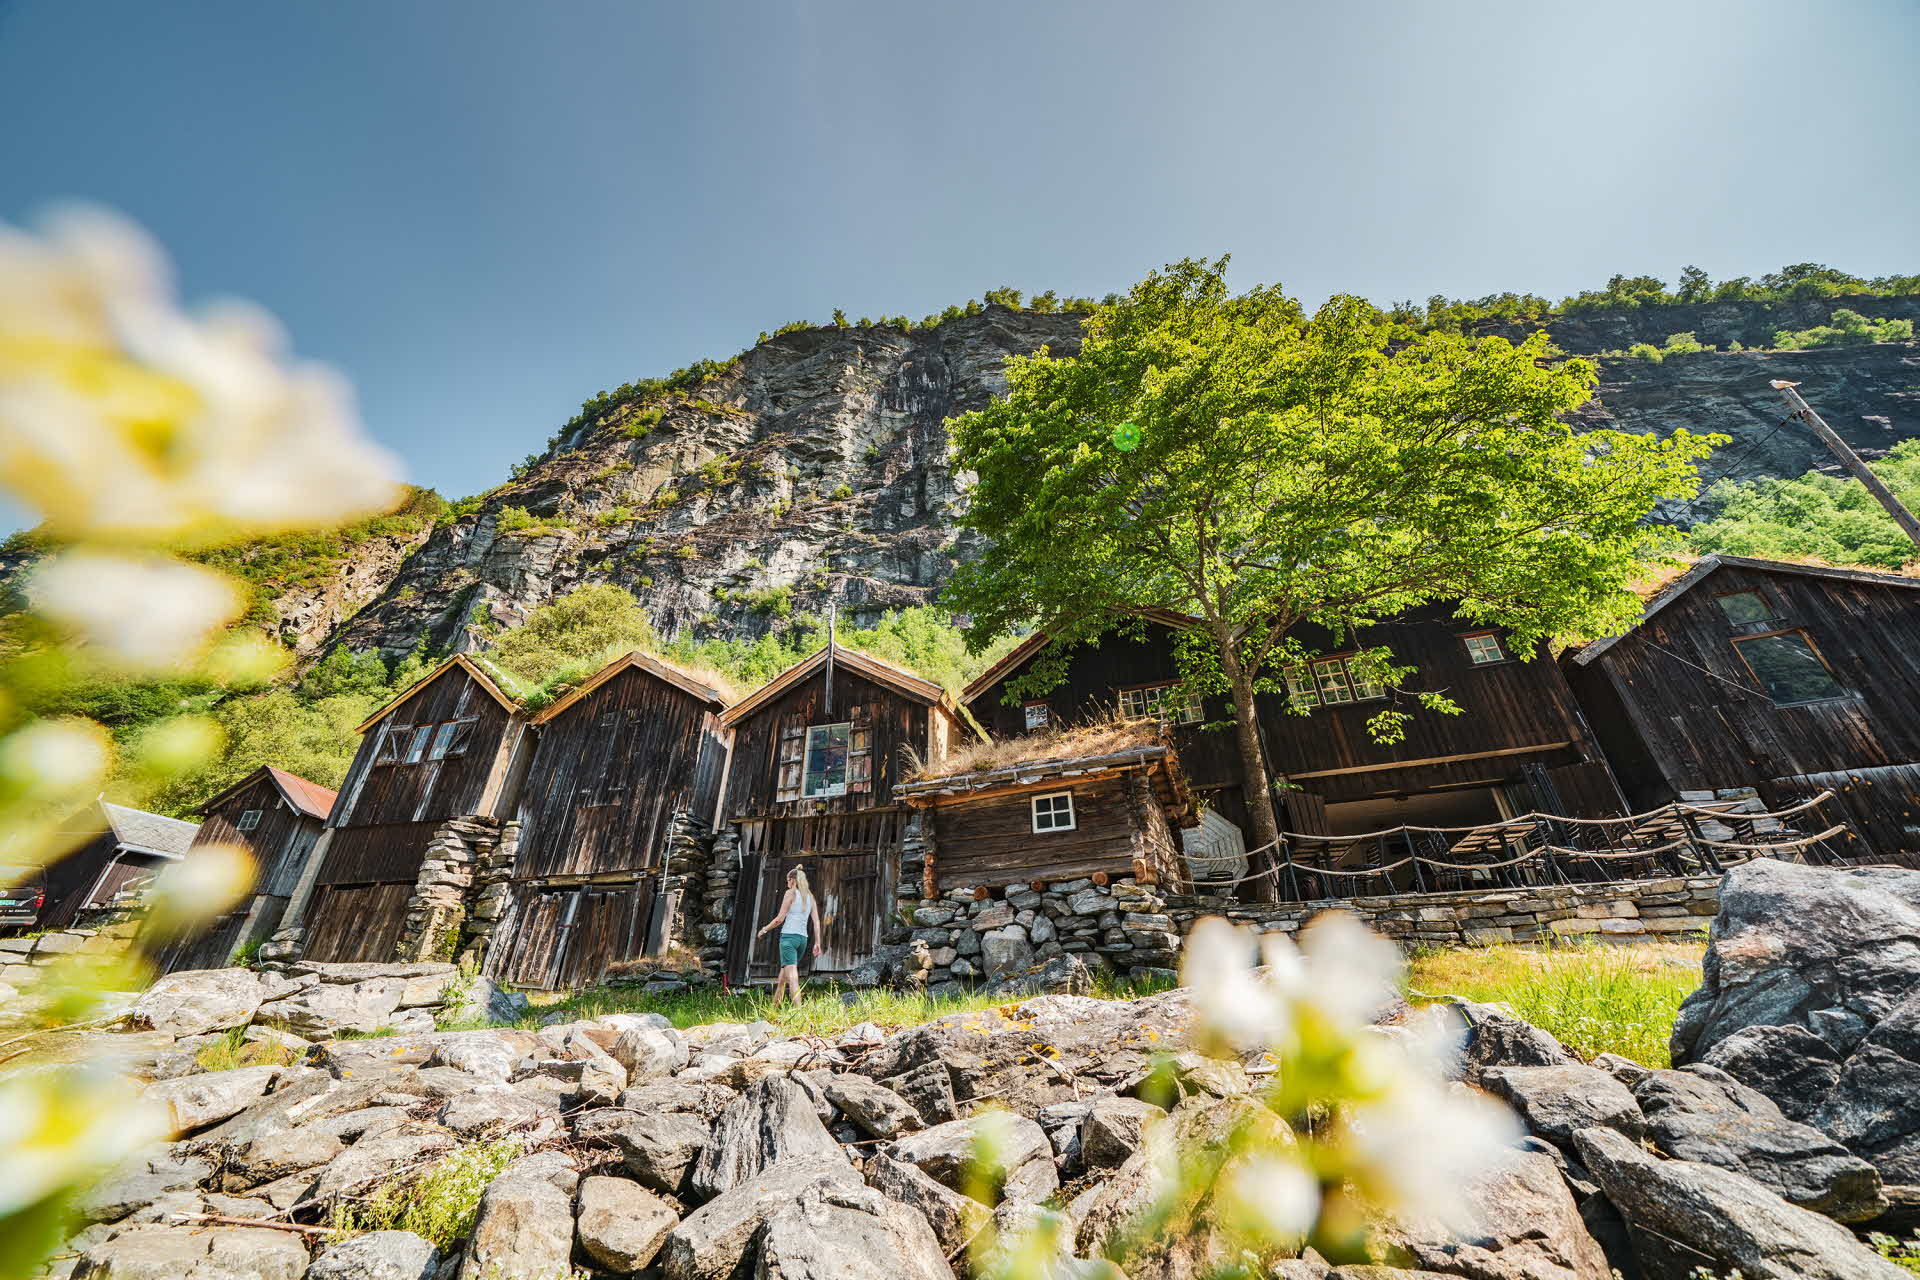 A woman walking next to old wooden houses in Geiranger